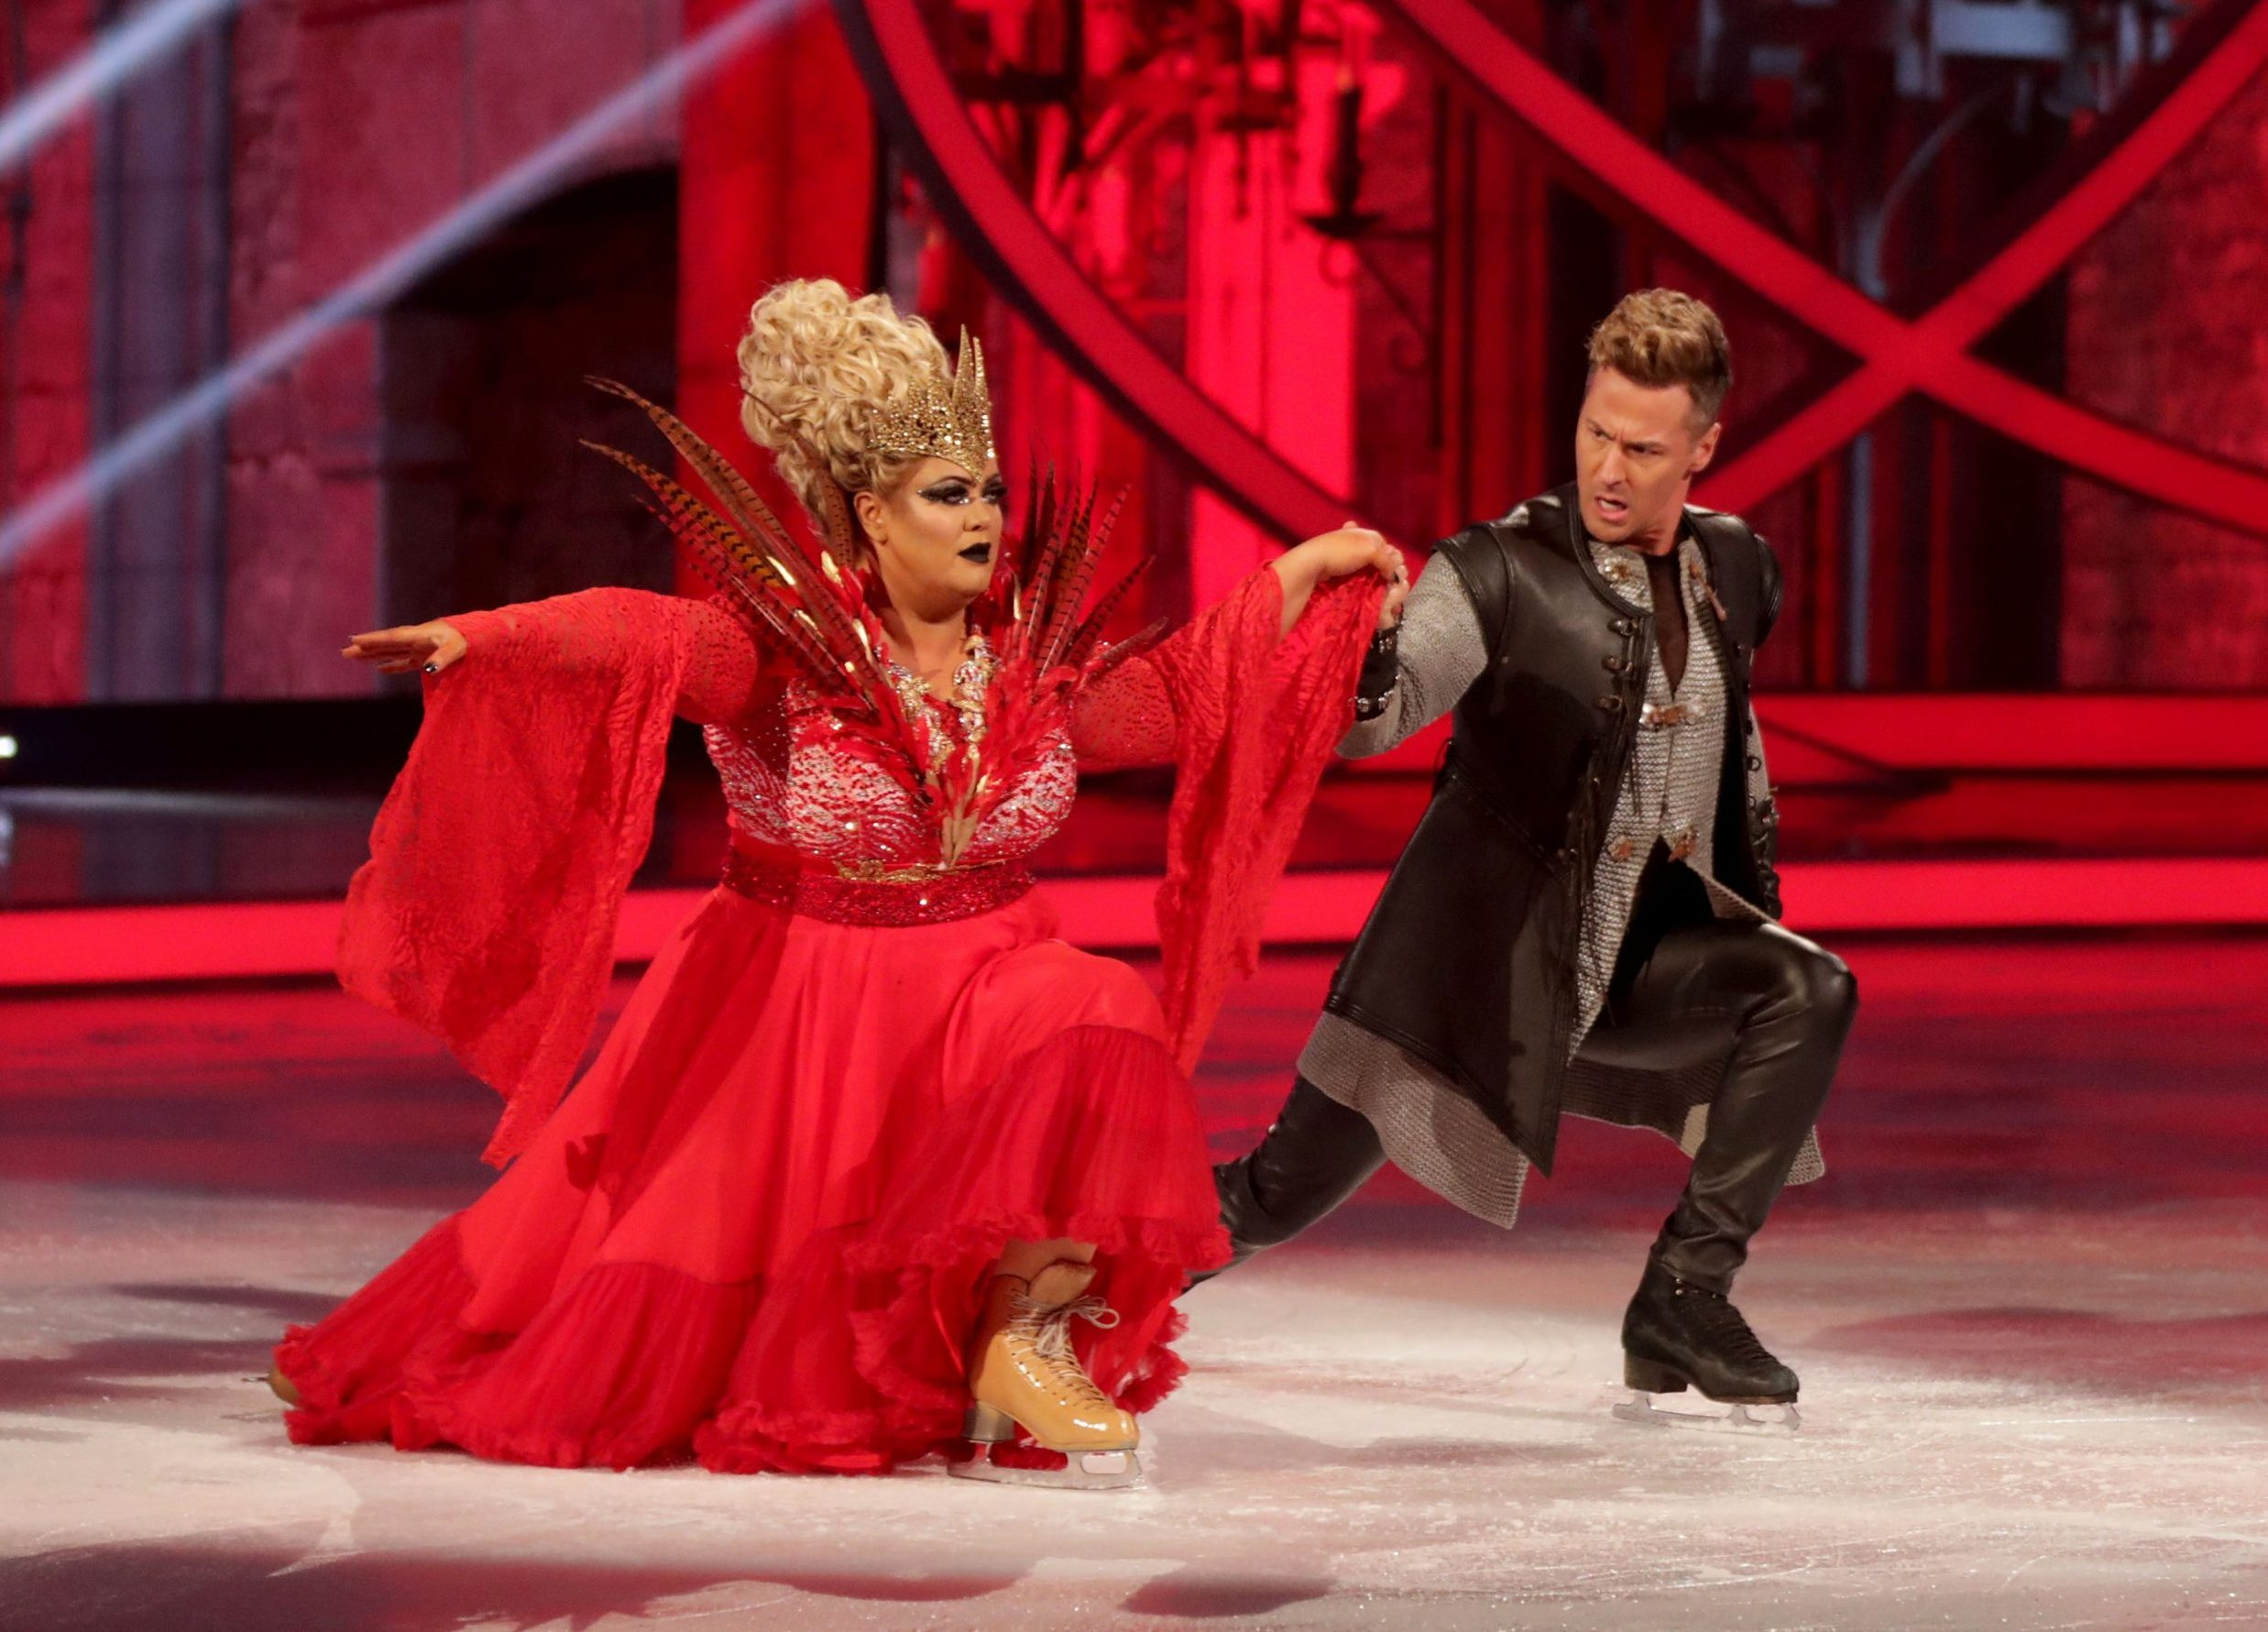 Brian McFadden claims Dancing On Ice bosses are worried no one will watch now Gemma Collins has gone